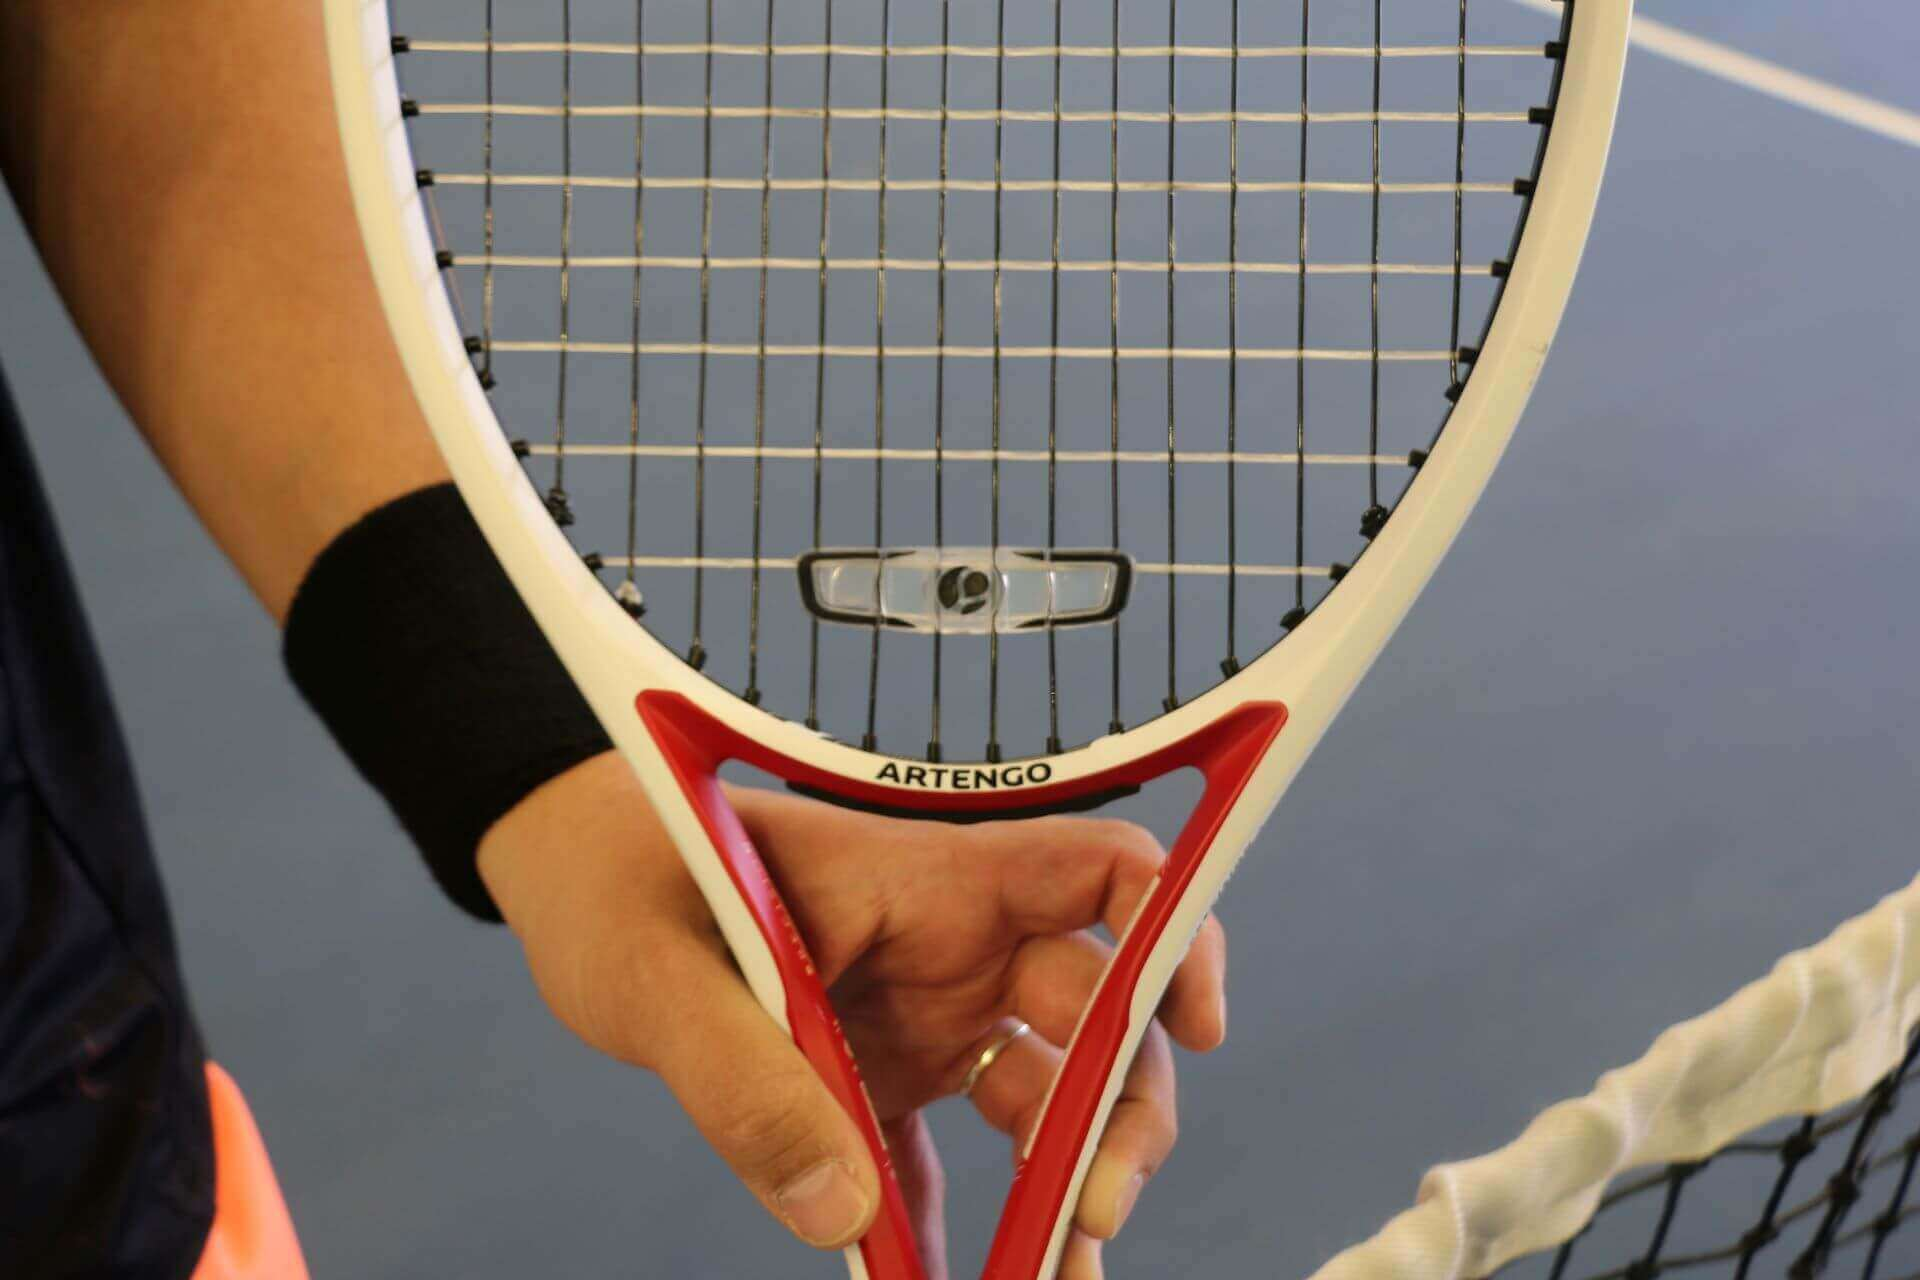 Are Vibration Dampers Right for Your Tennis Game?